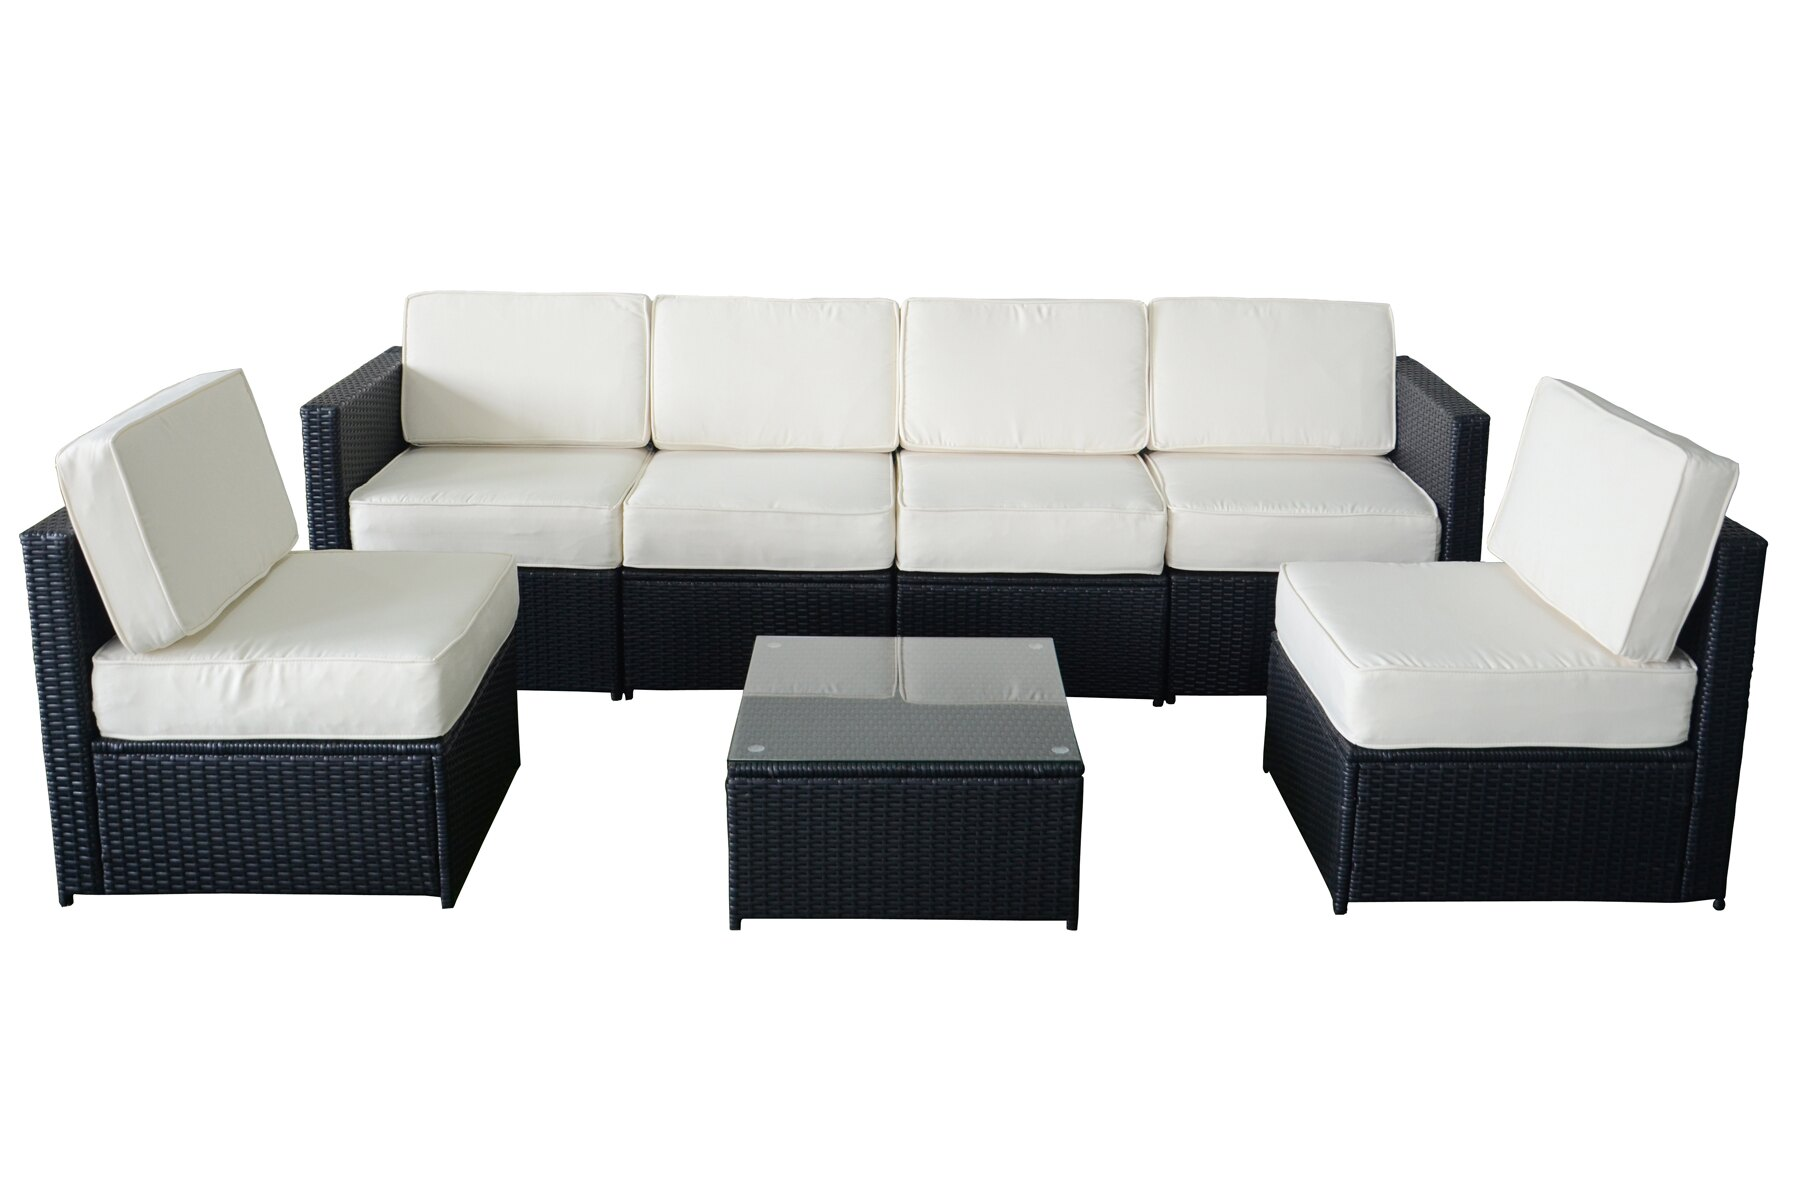 MCombo 7pcs Black Wicker White Cushion Patio Sectional Outdoor Sofa  Furniture Set 6085 S1007